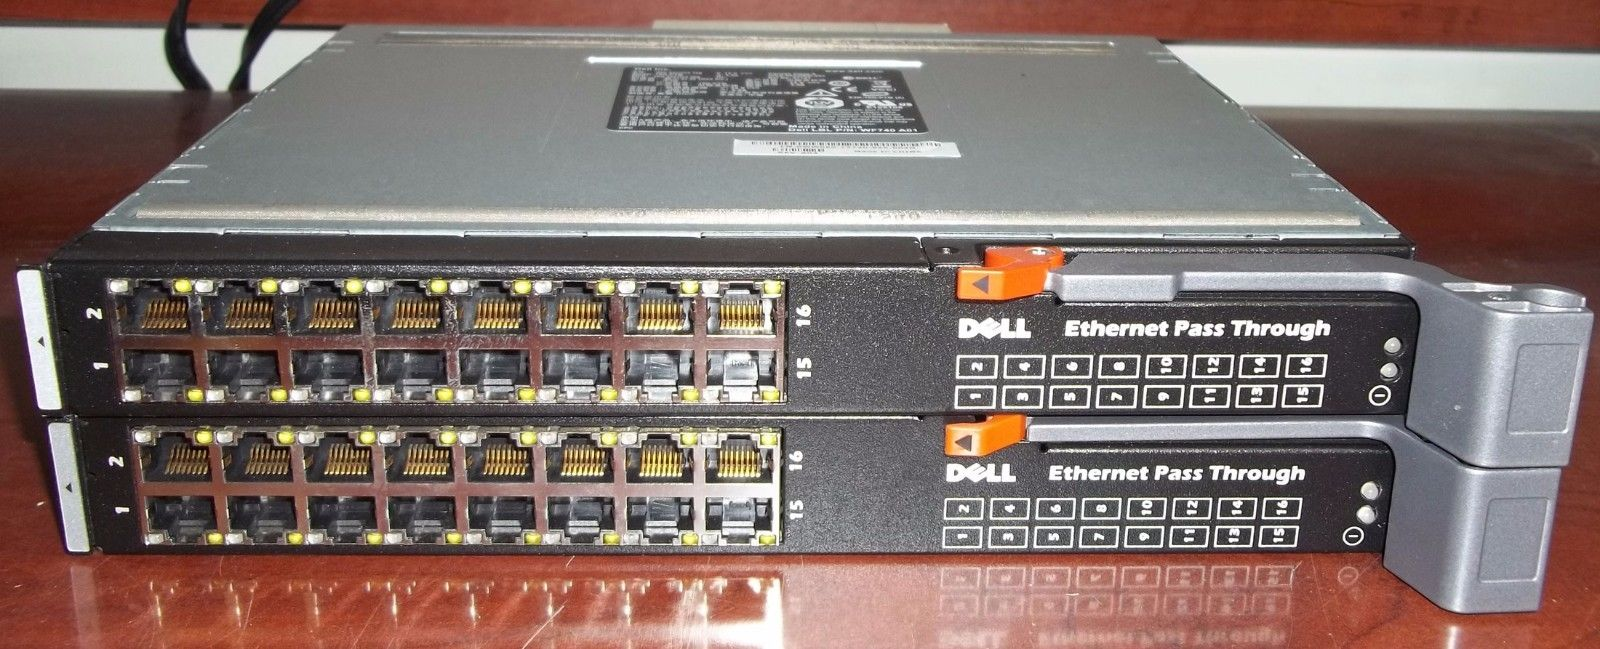 2 Dell Ethernet Pass Modules 10G-PTM 0WW060 from M1000e Blades